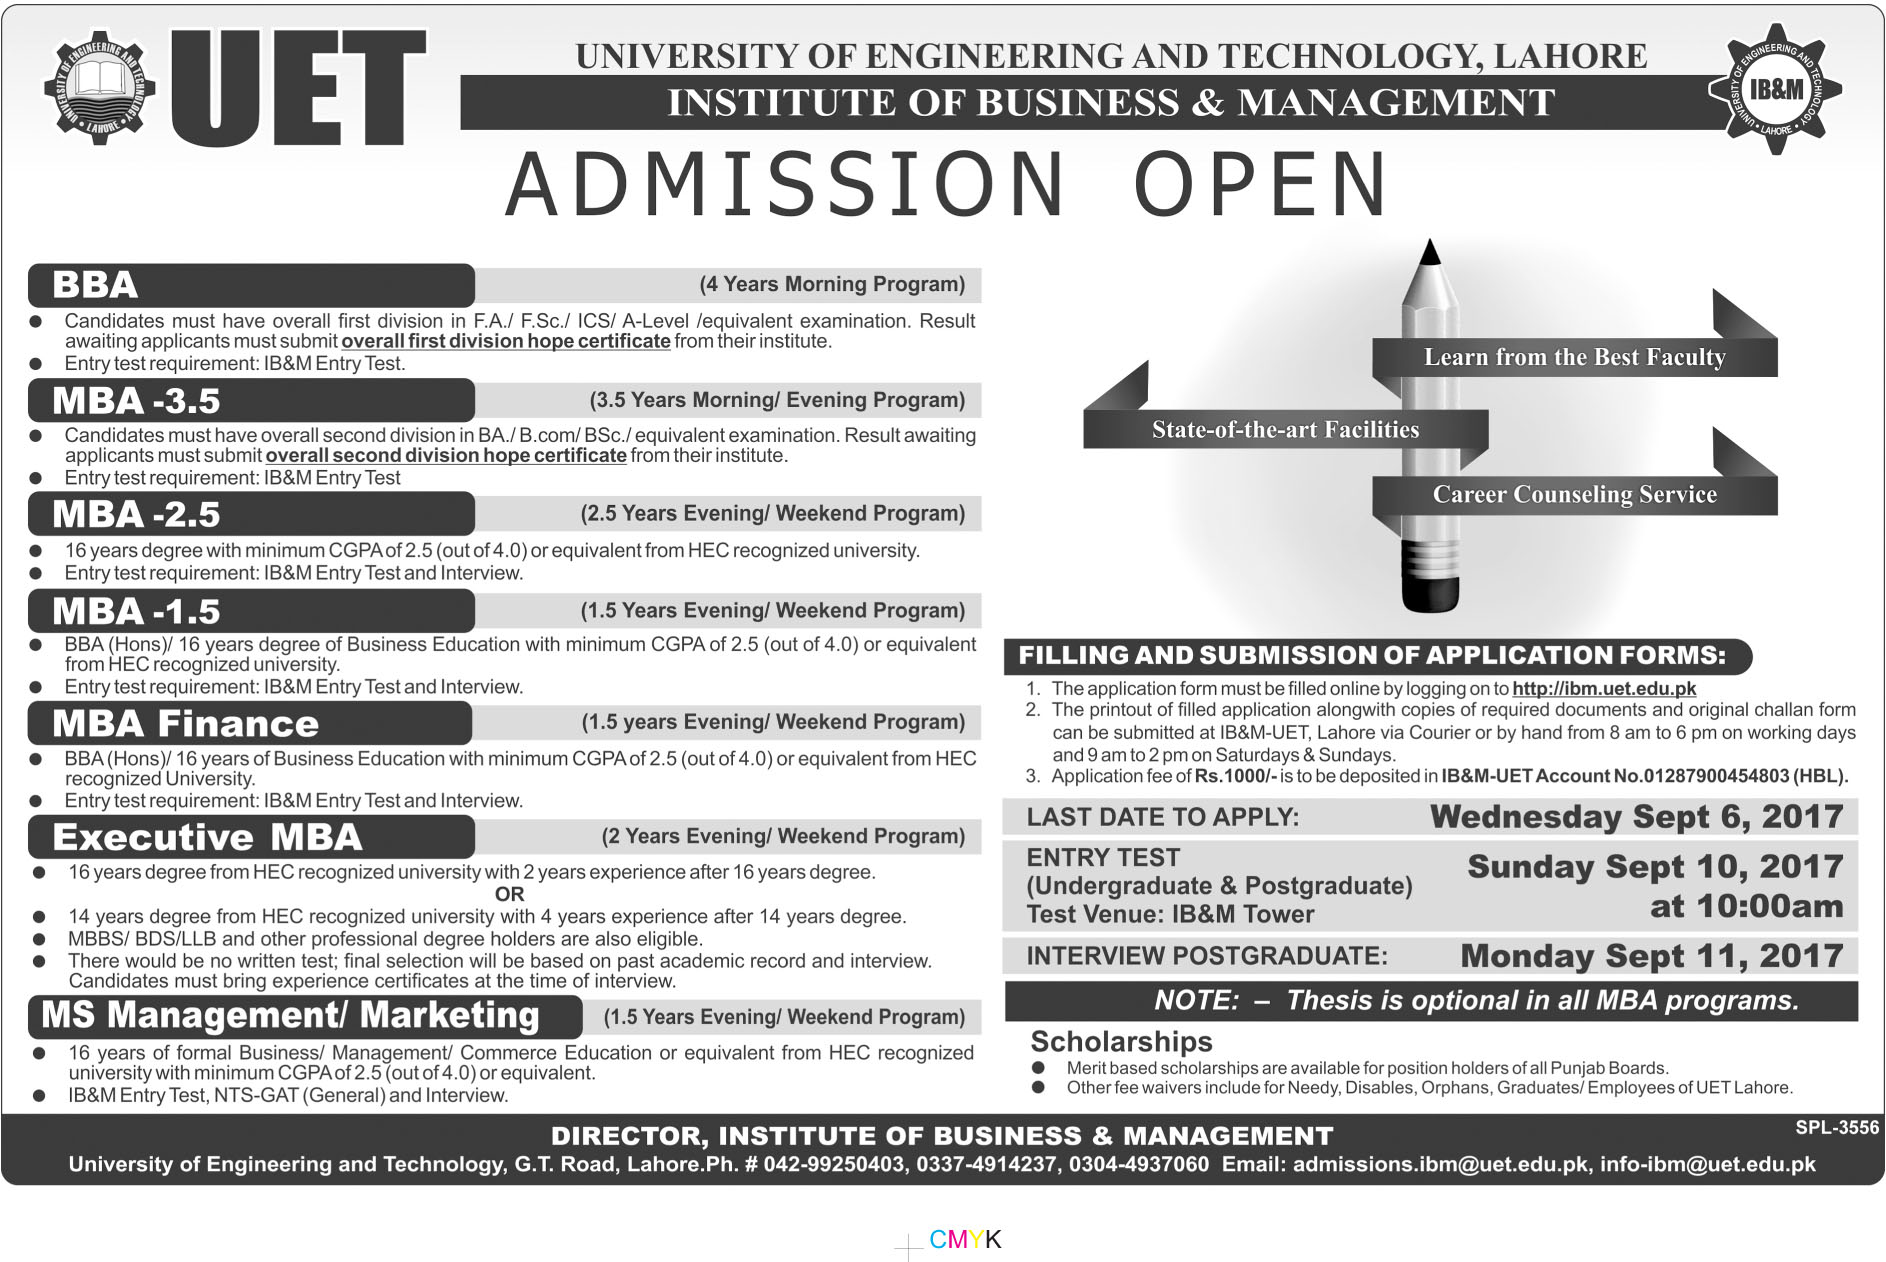 UET IBM Admissions 2018 Schedule For BBA, MBA